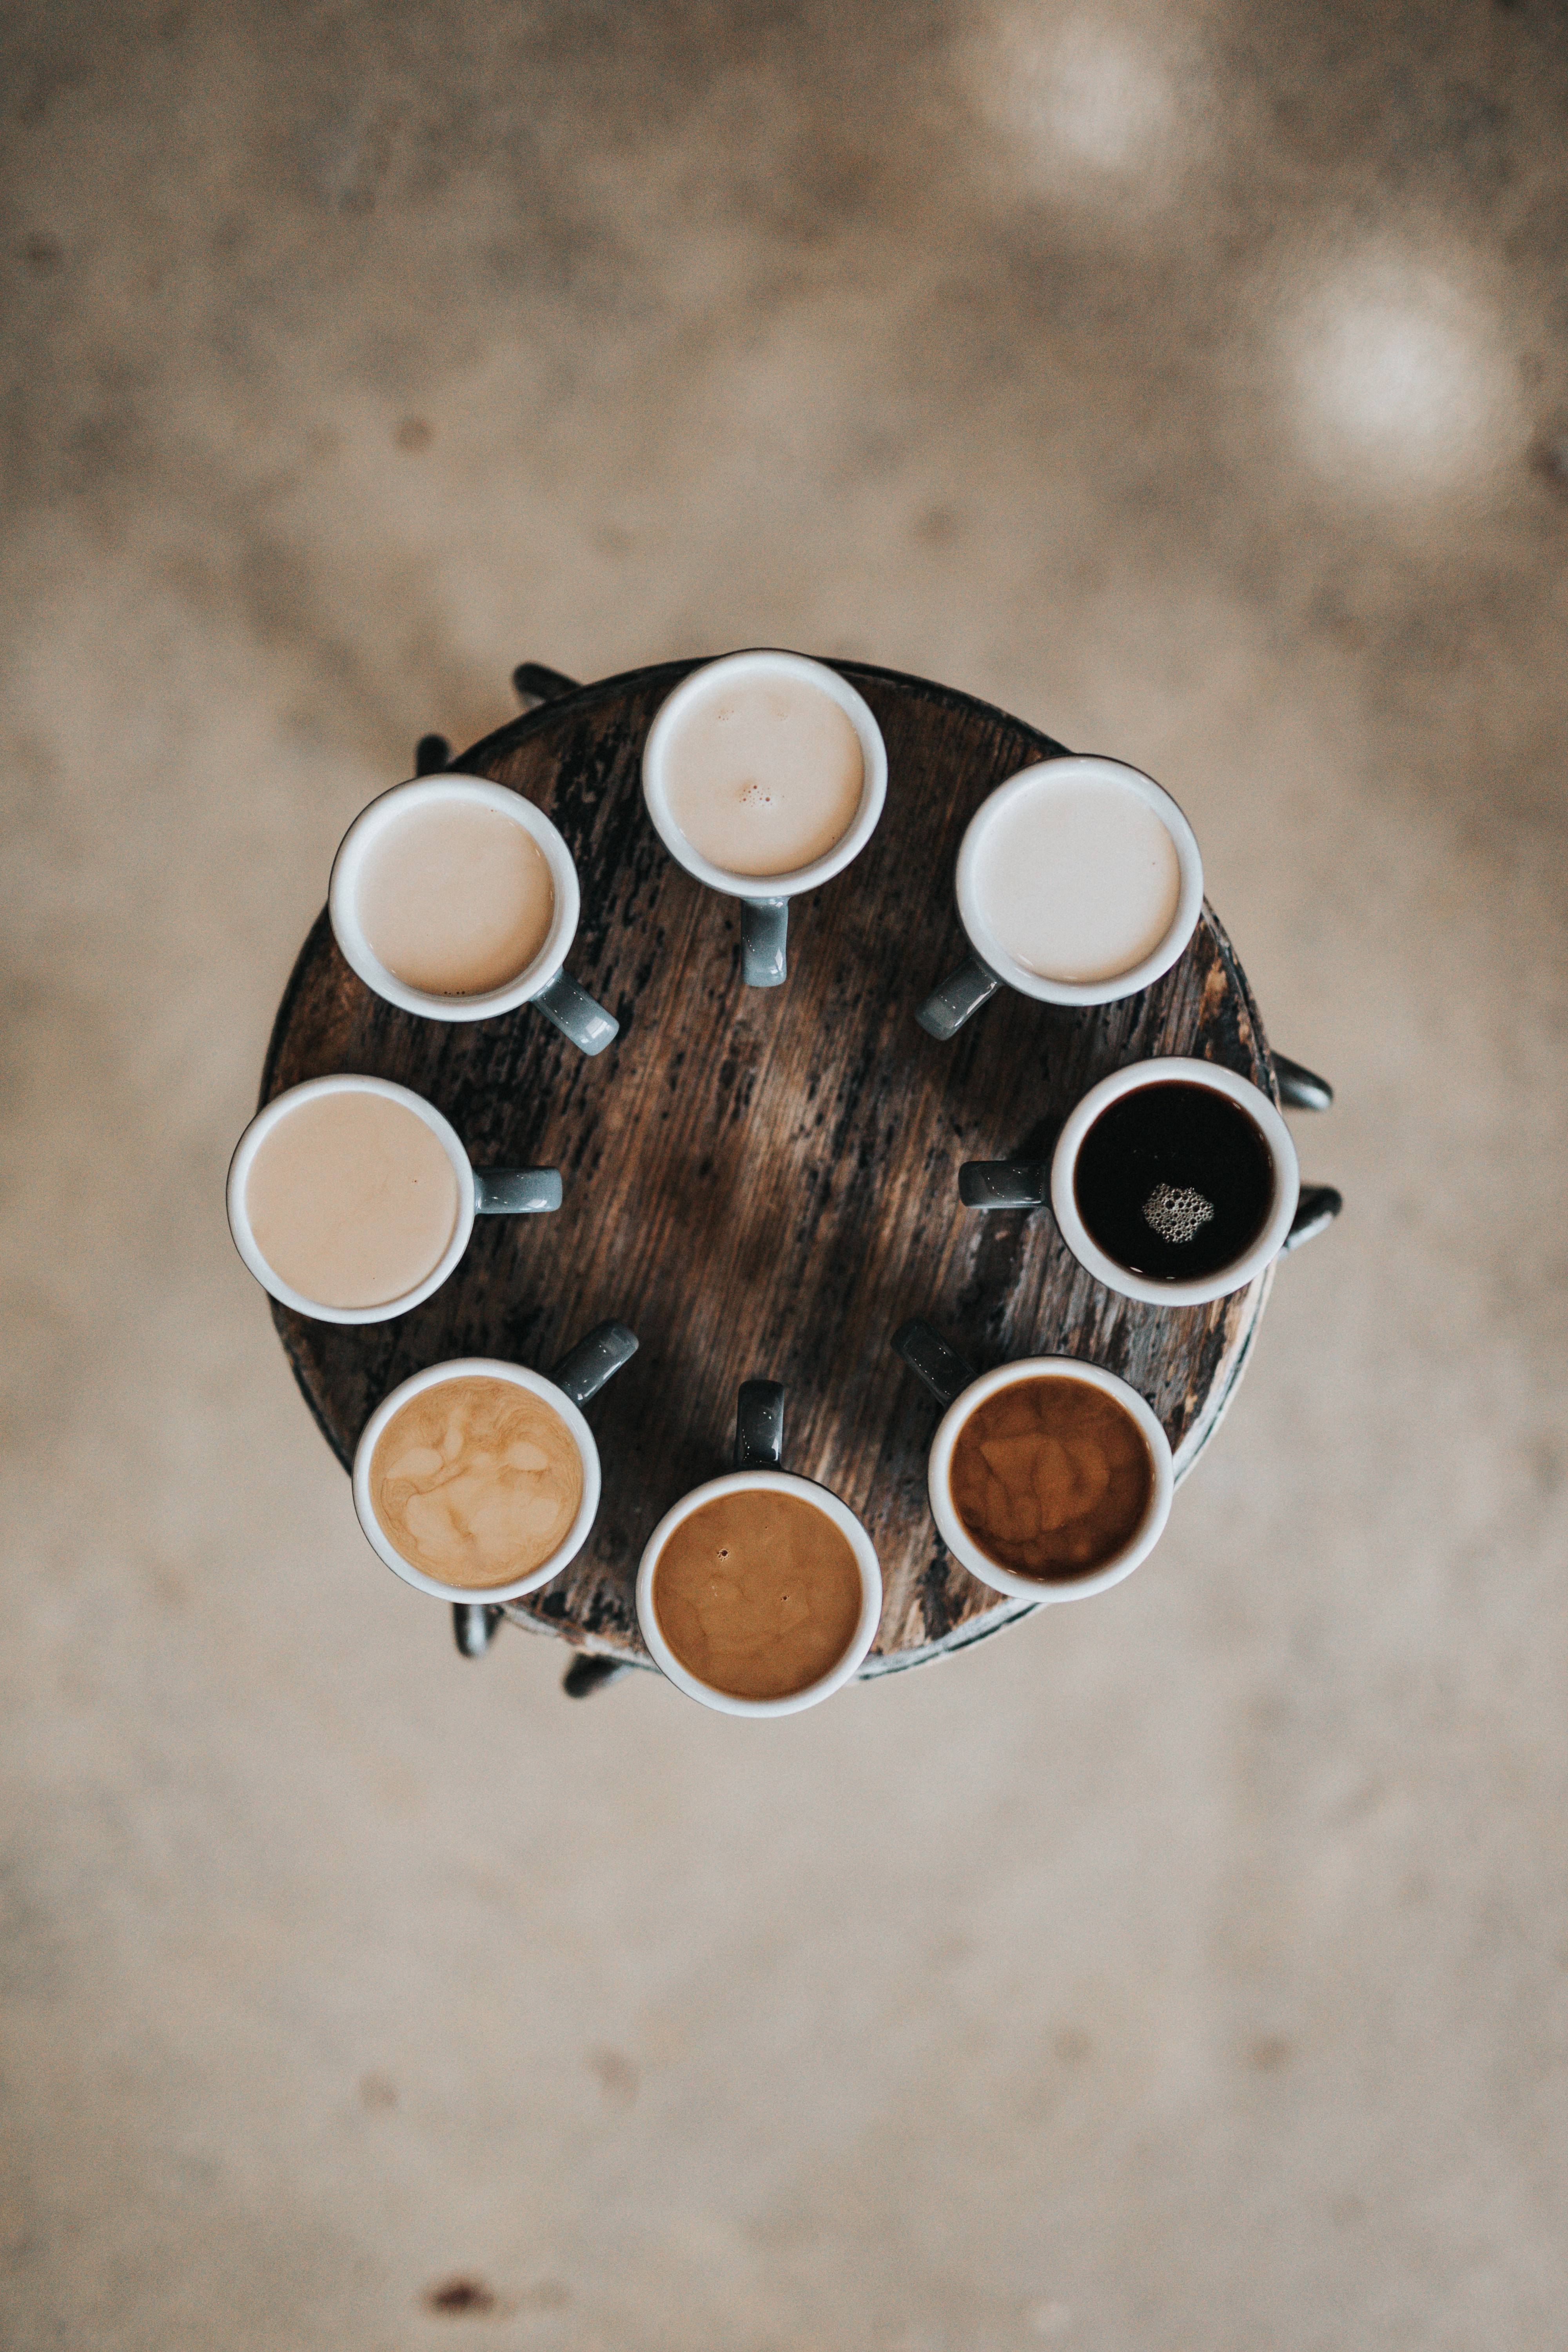 Cups of coffee—cover photo for What's in a Name by Sharon Hurley Hall and Jevin Lortie